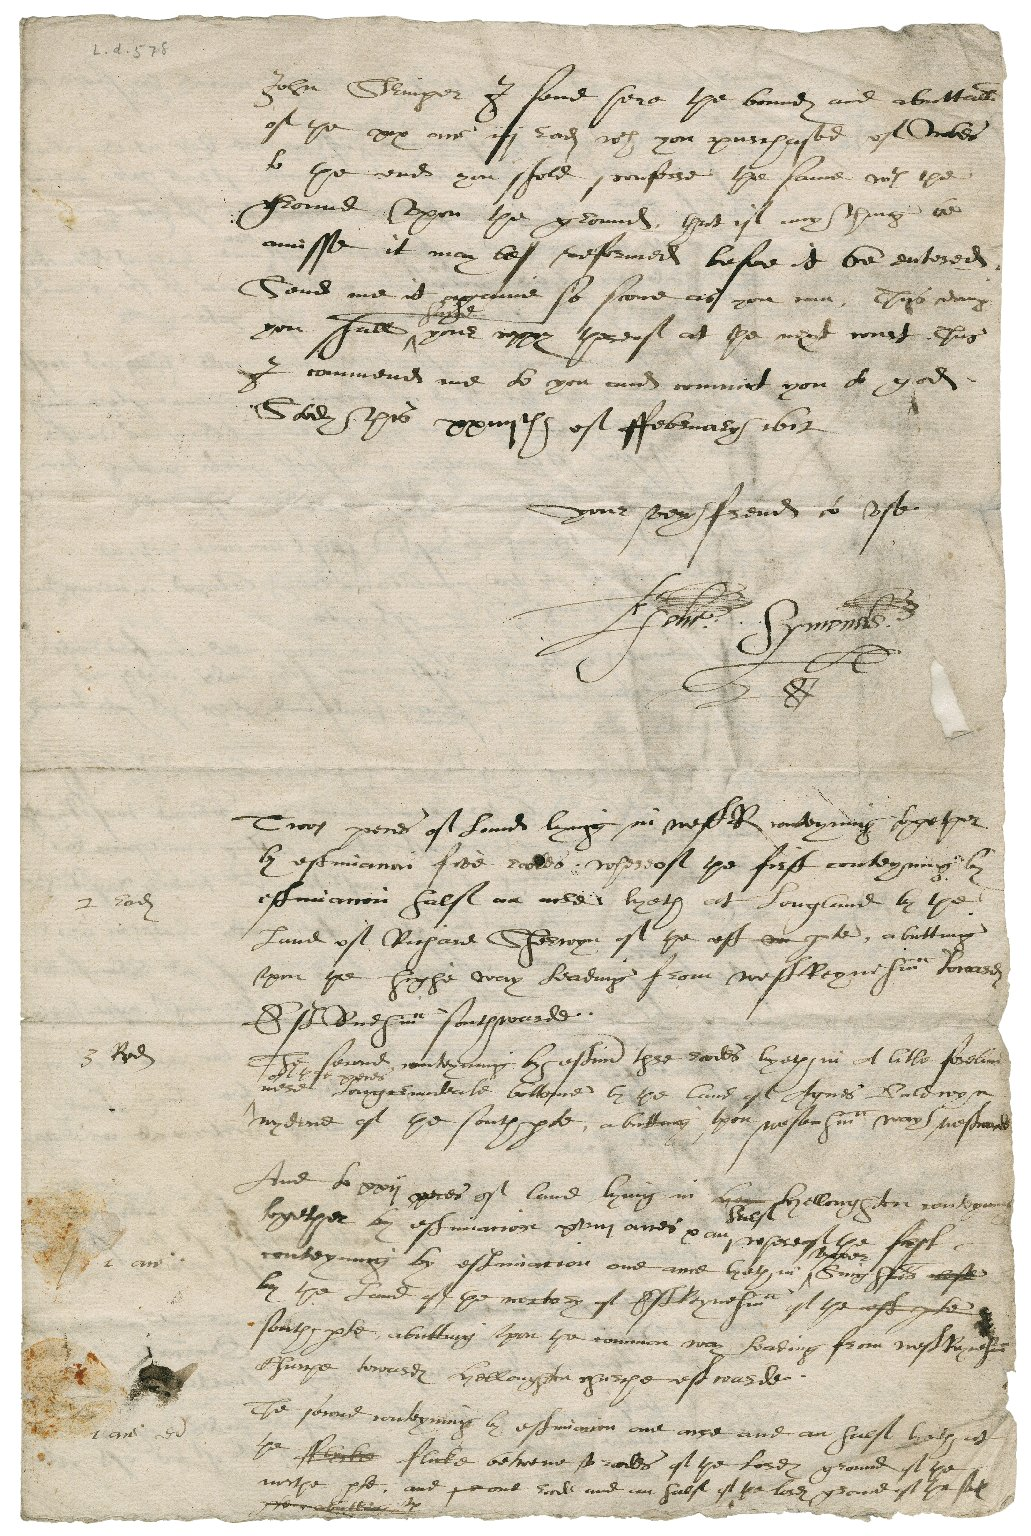 Letter from Edward Symonds [i.e. Simens] to John Stringer